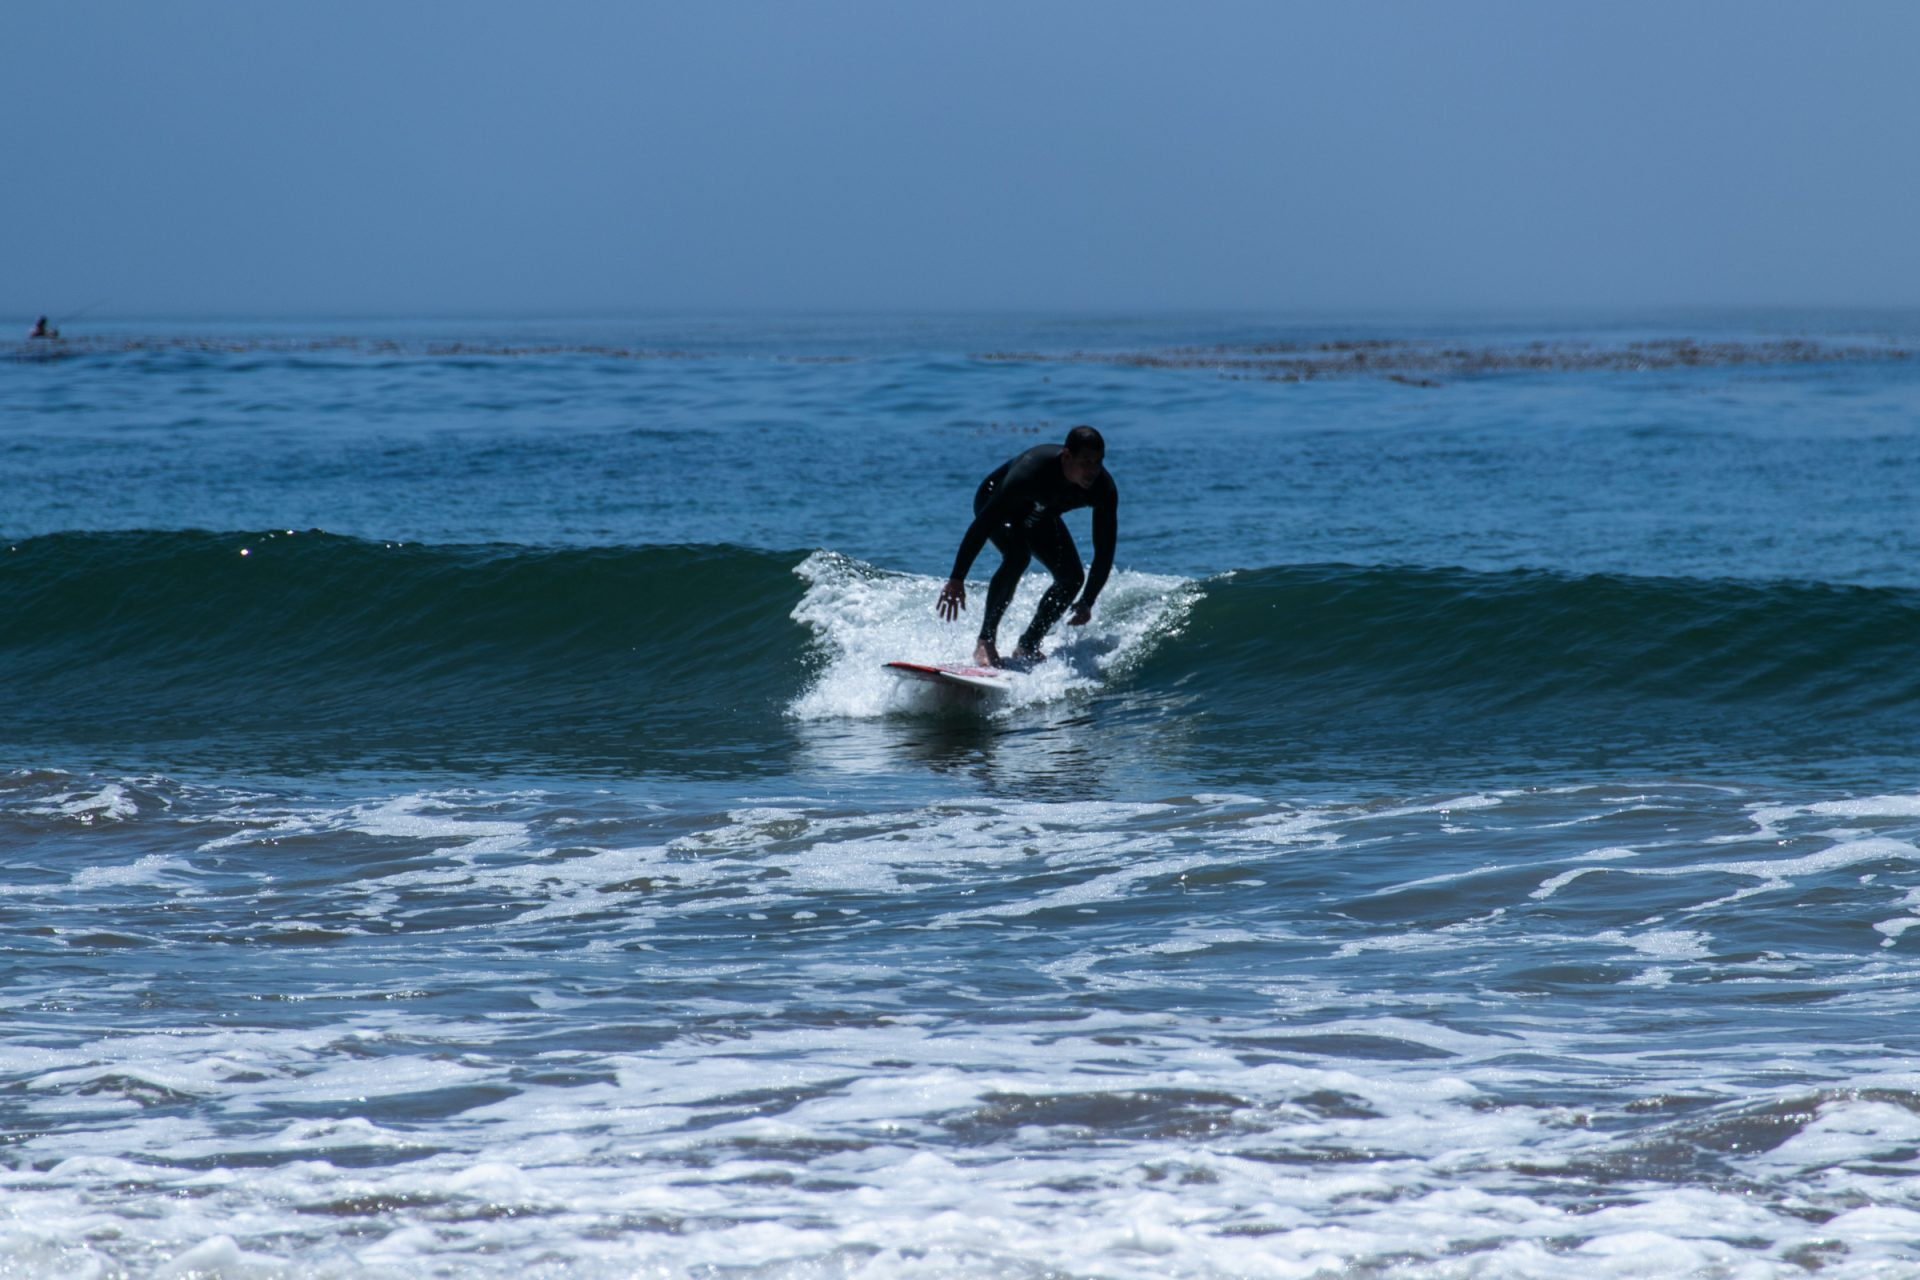 Man In Black Wetsuit Surfing Small Waves